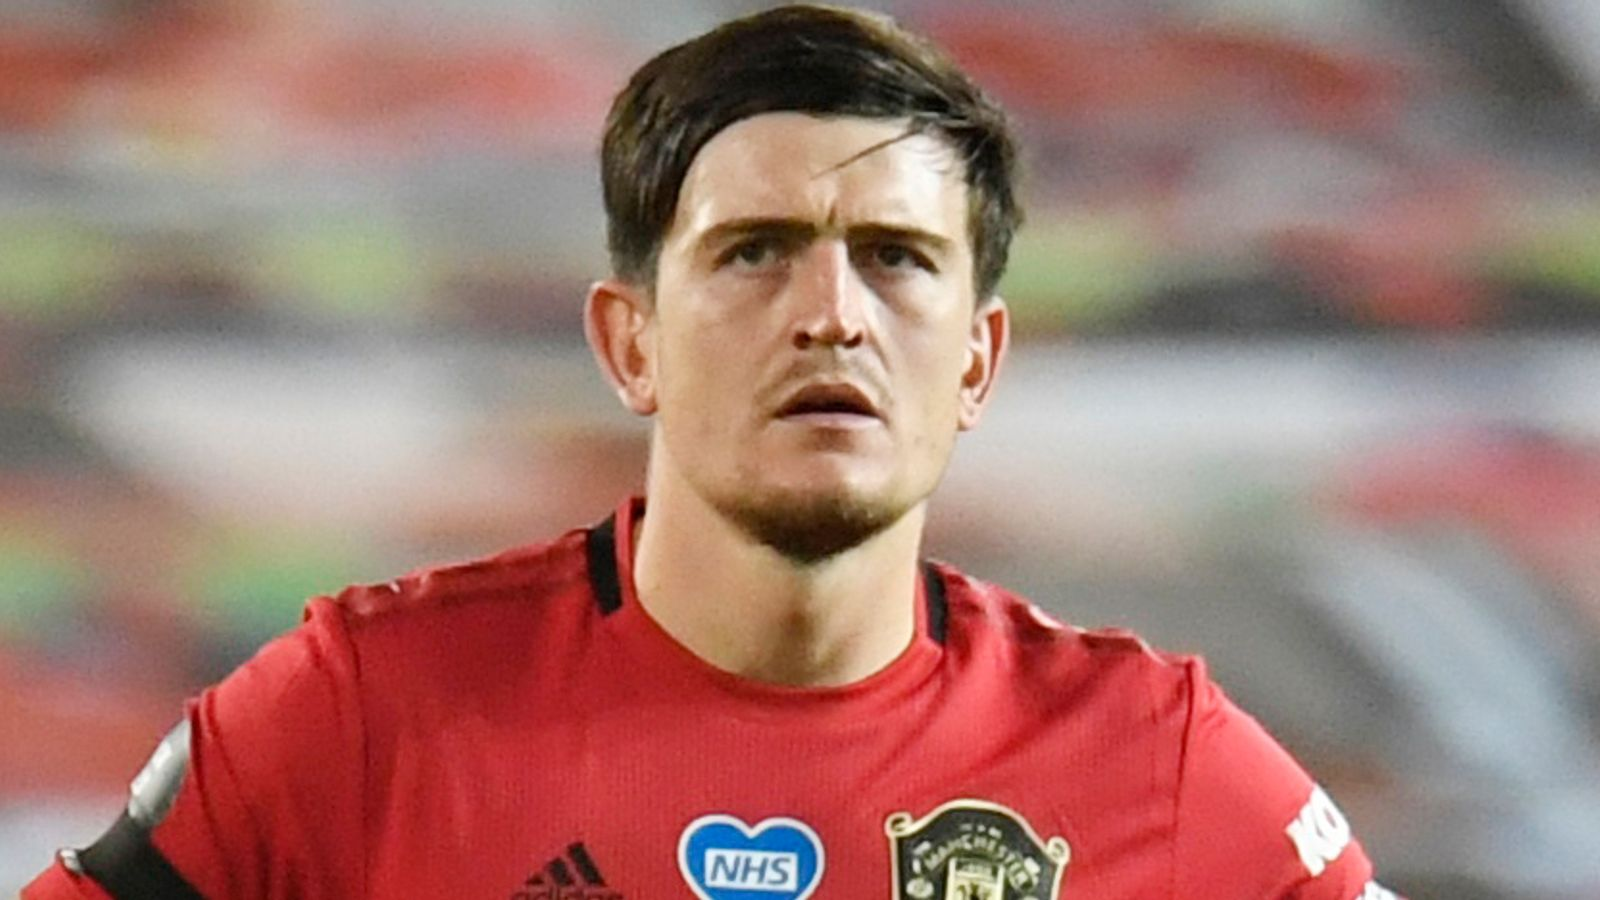 Harry Maguire set for retrial after being granted appeal against assault  conviction in Greece | World News | Sky News